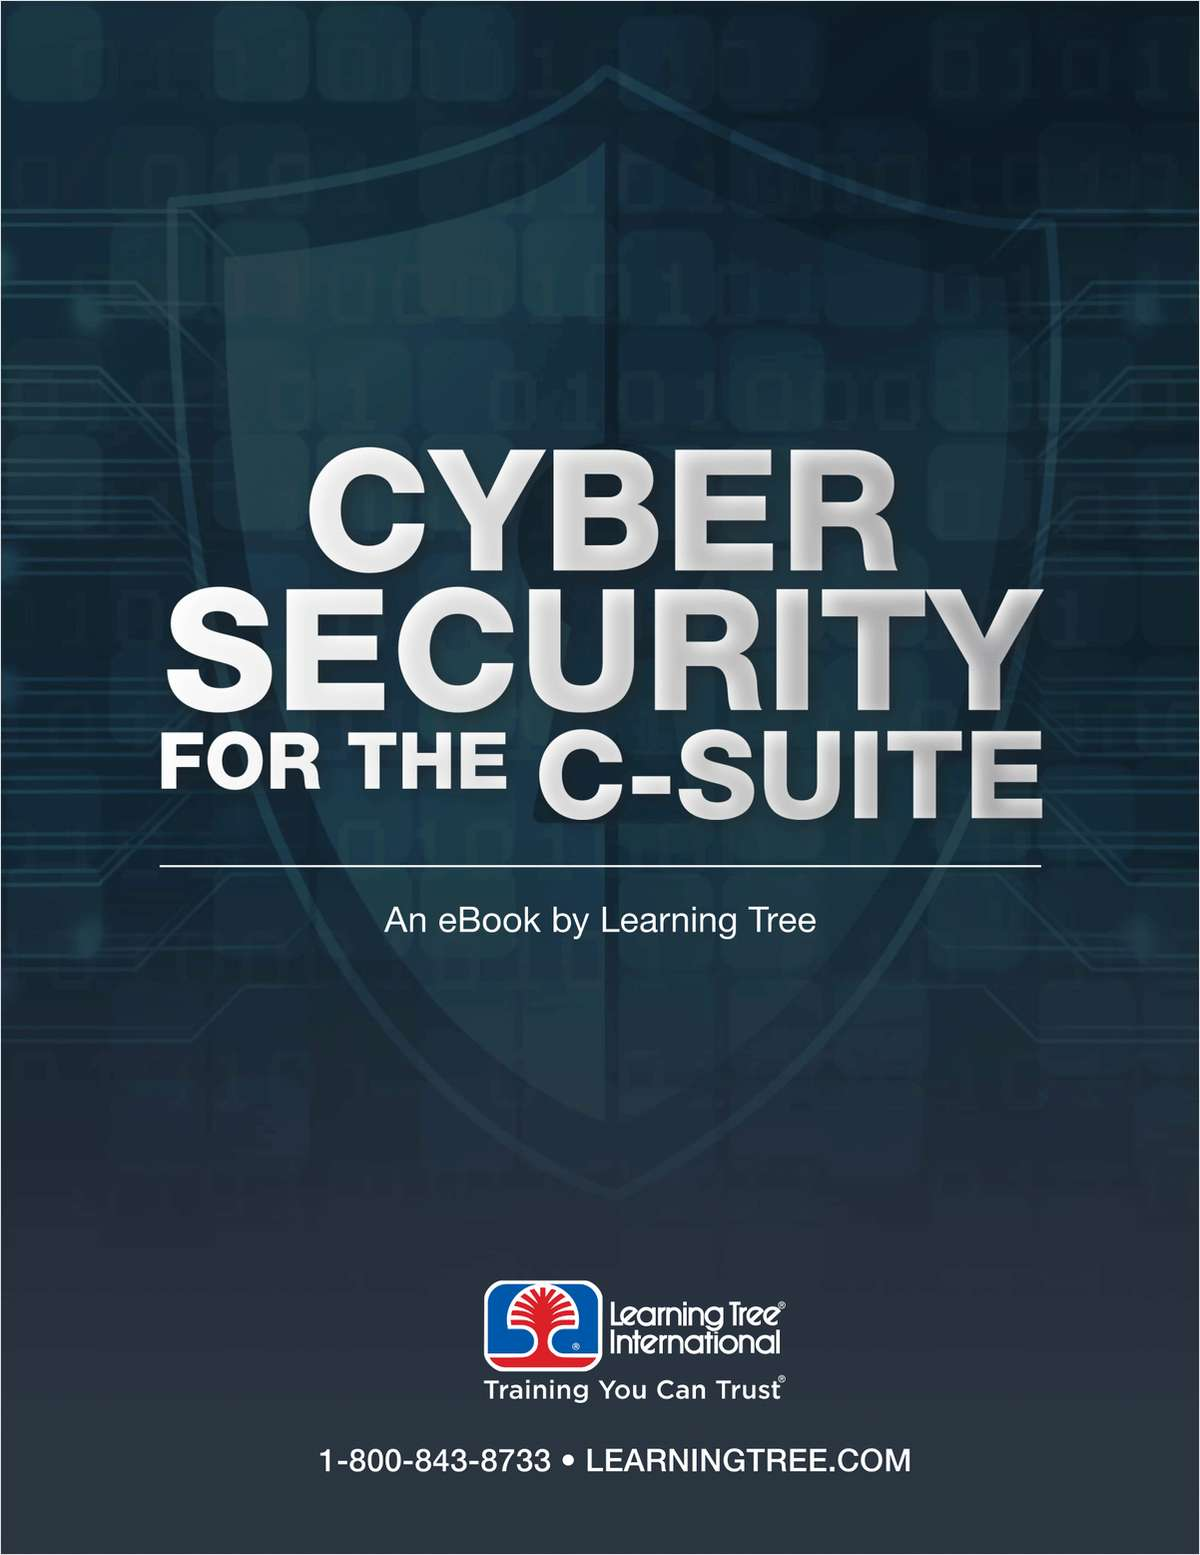 Cyber Security for the C-Suite